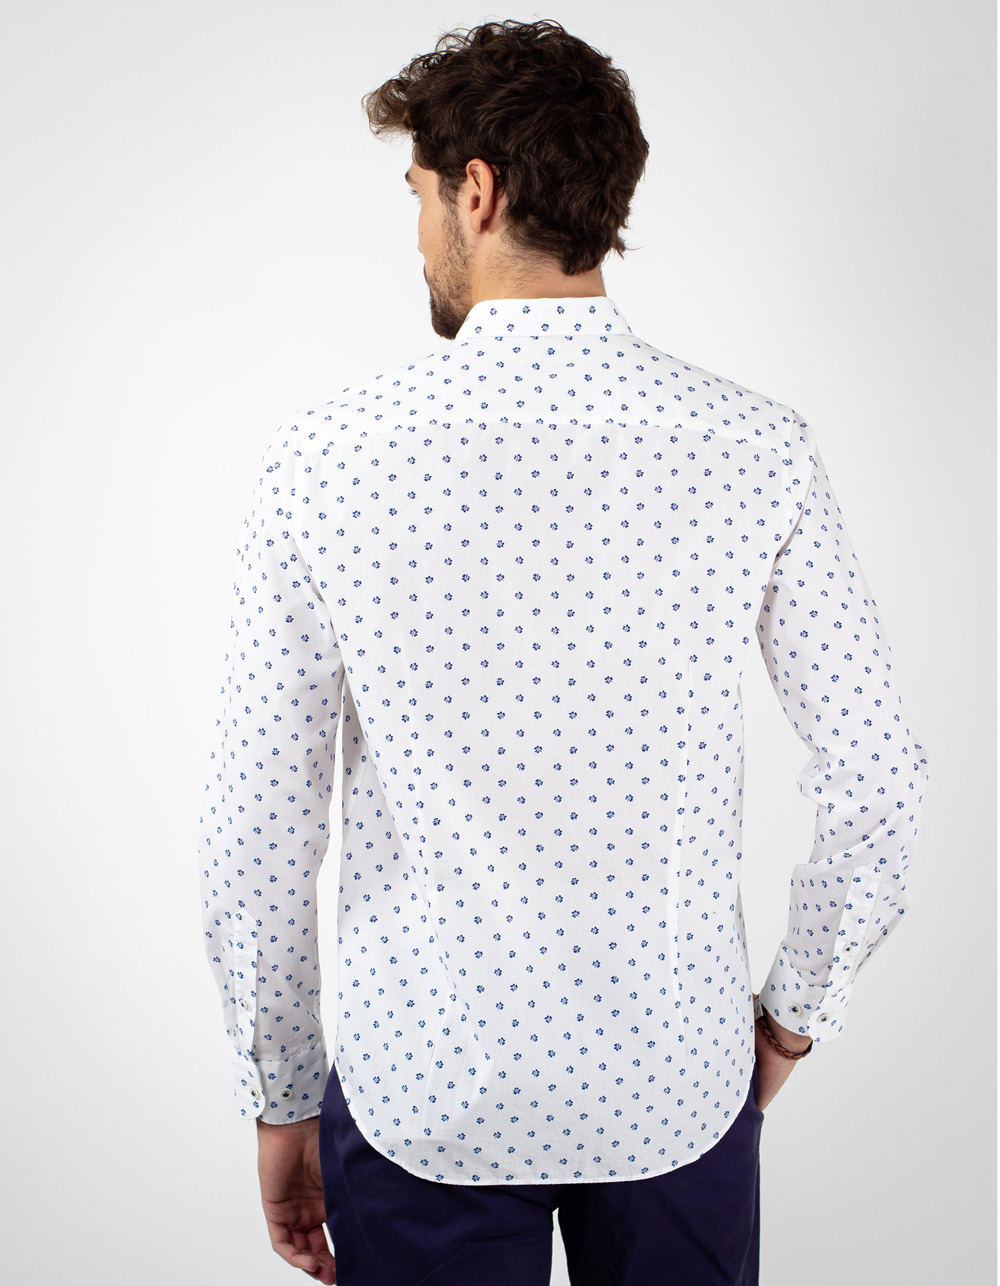 Camisa blanca estampada flores azules - Backside